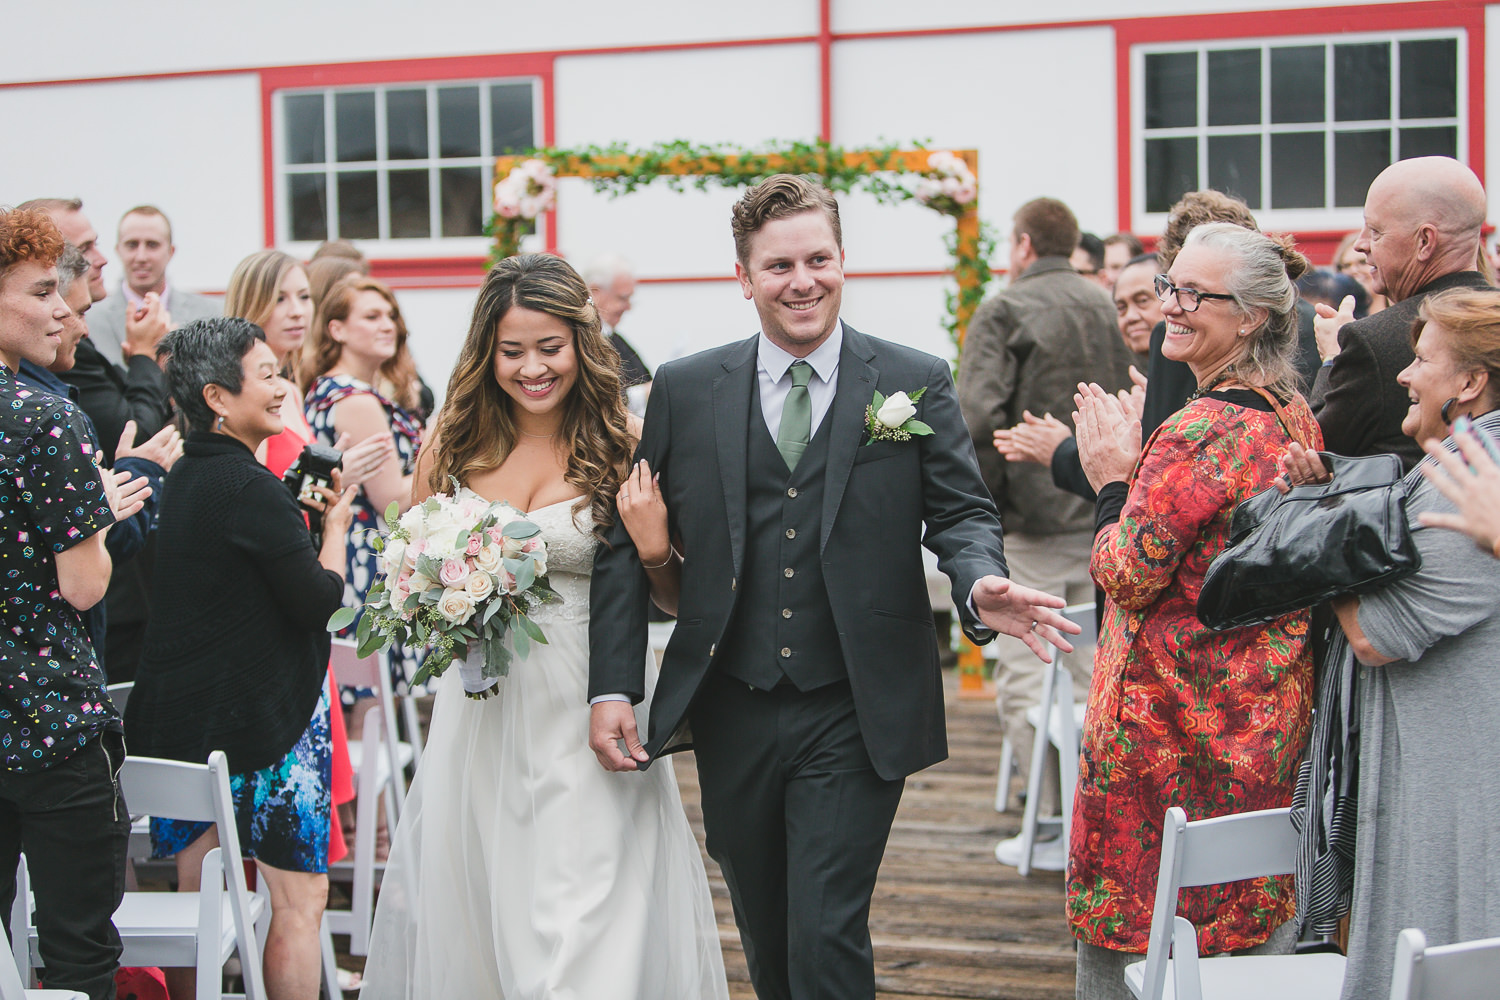 bride and groom recessional with crowd at quirky wedding